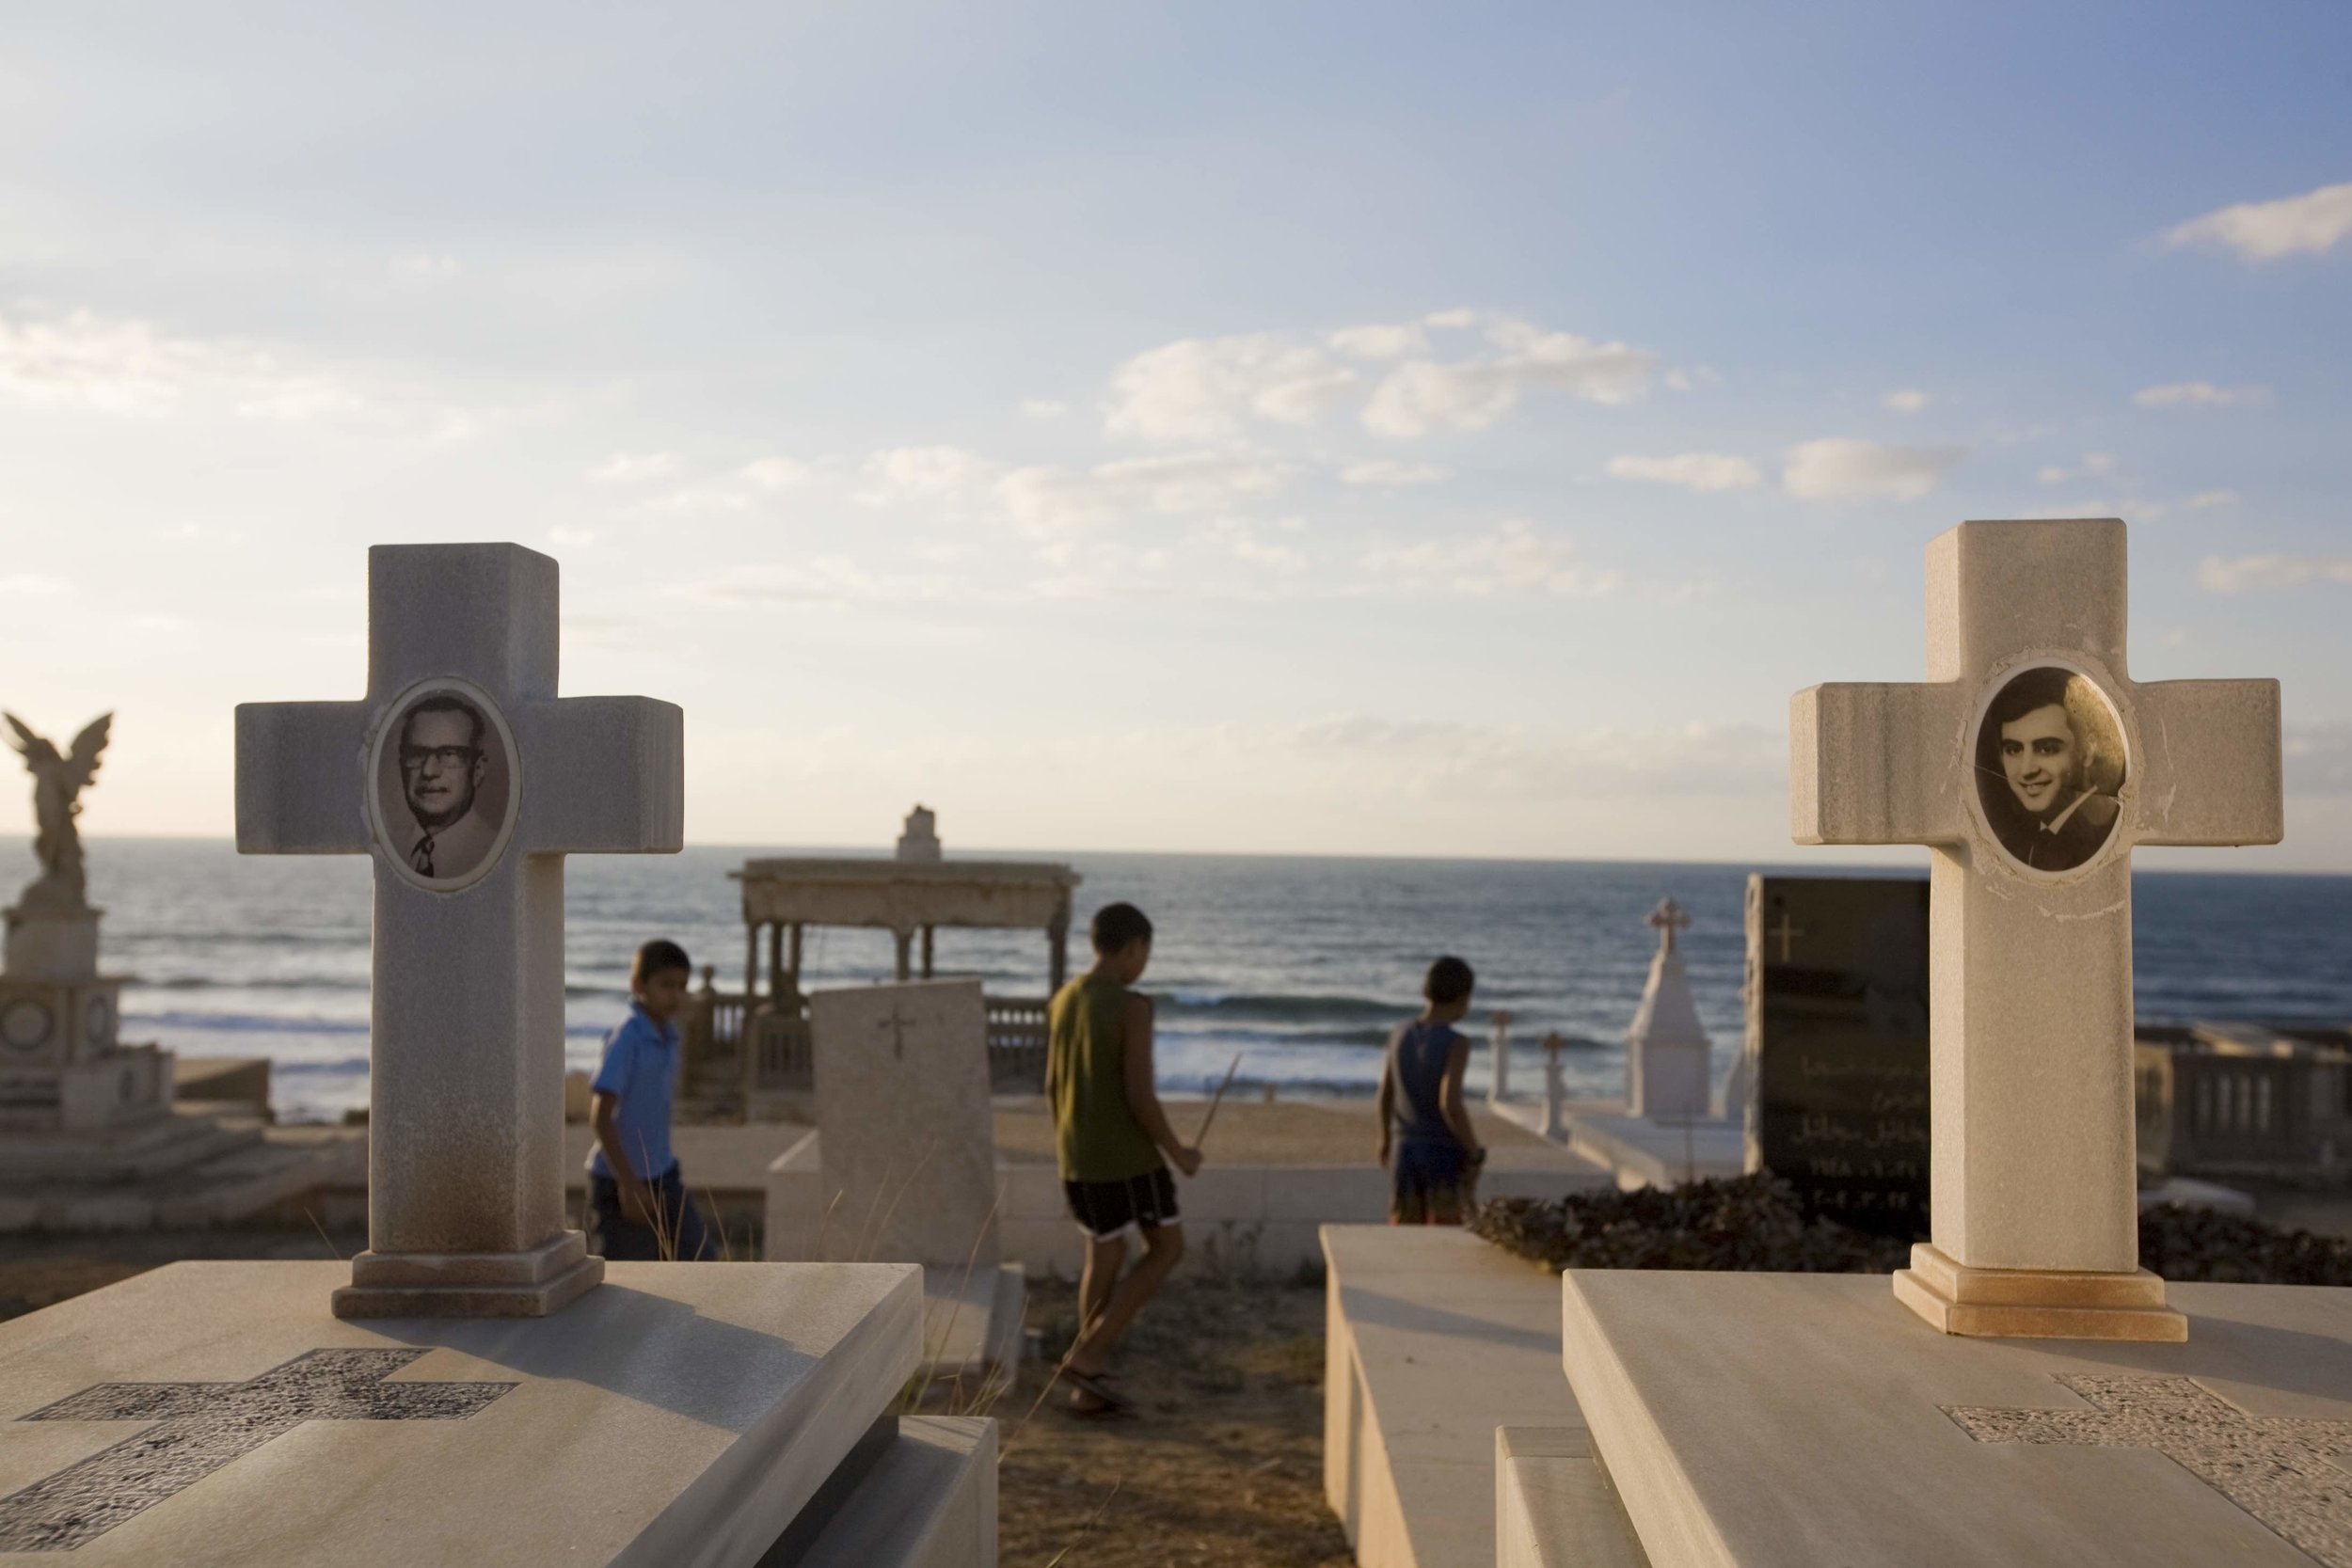 Children playing in the cemetery / Jaffa,  Israel 2010